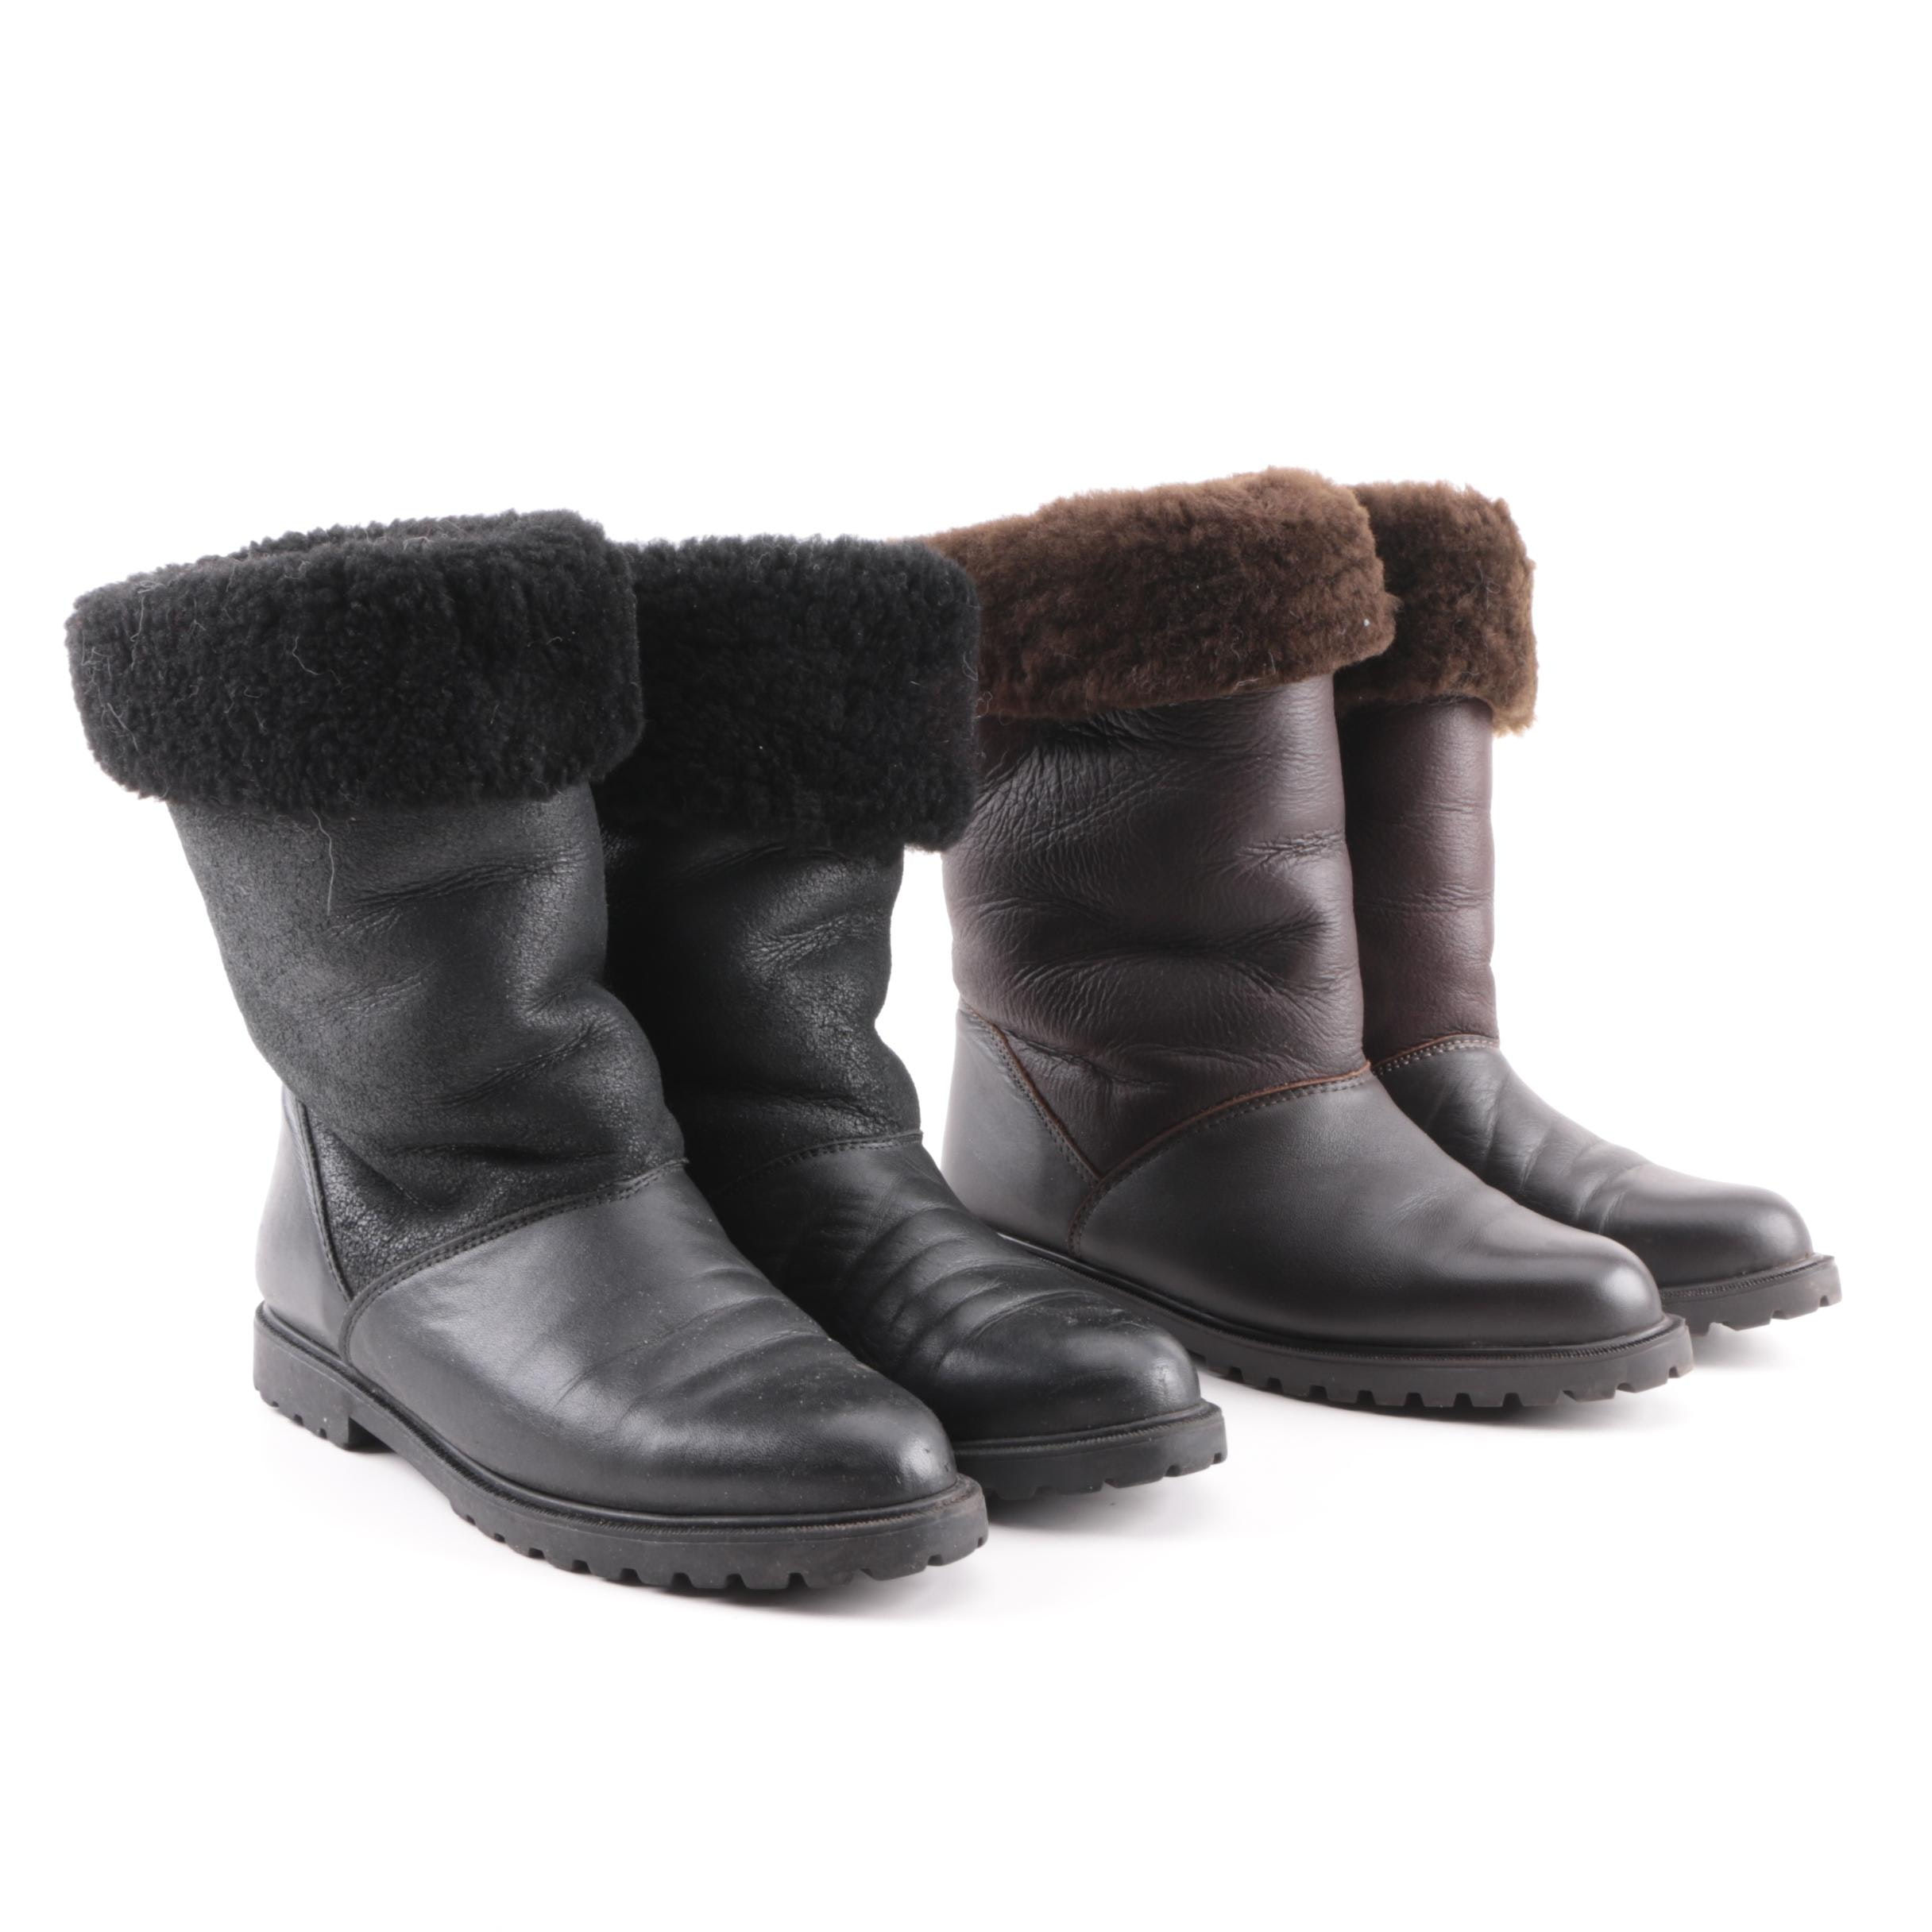 Women's La Canadienne Brown and Black Leather Boots with Shearling Liners